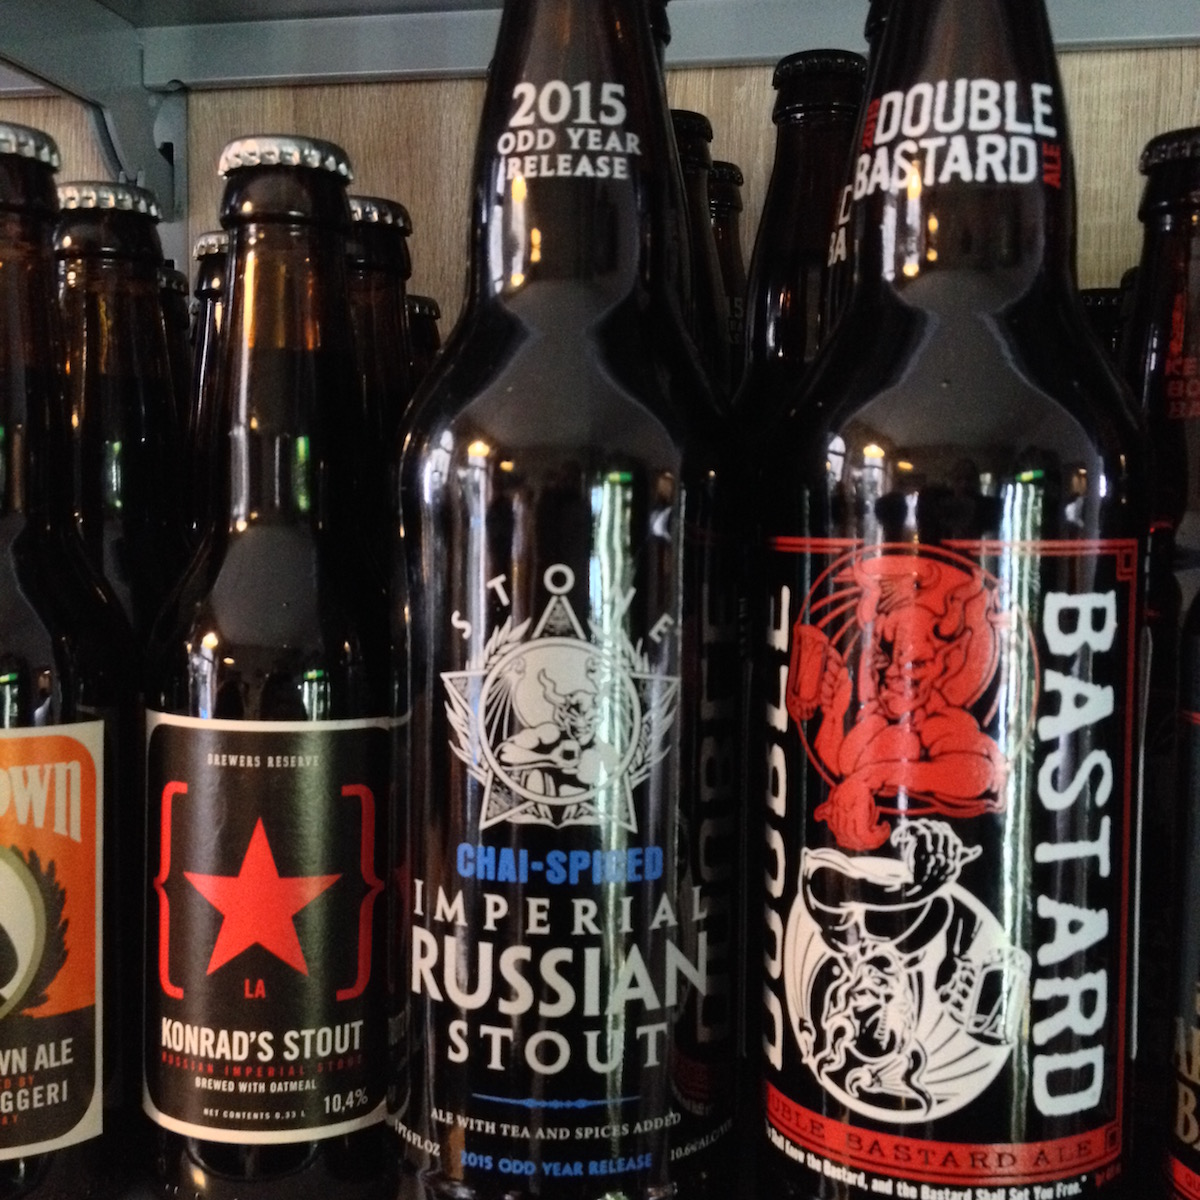 CHAI-SPICED Imperial Russian Stout